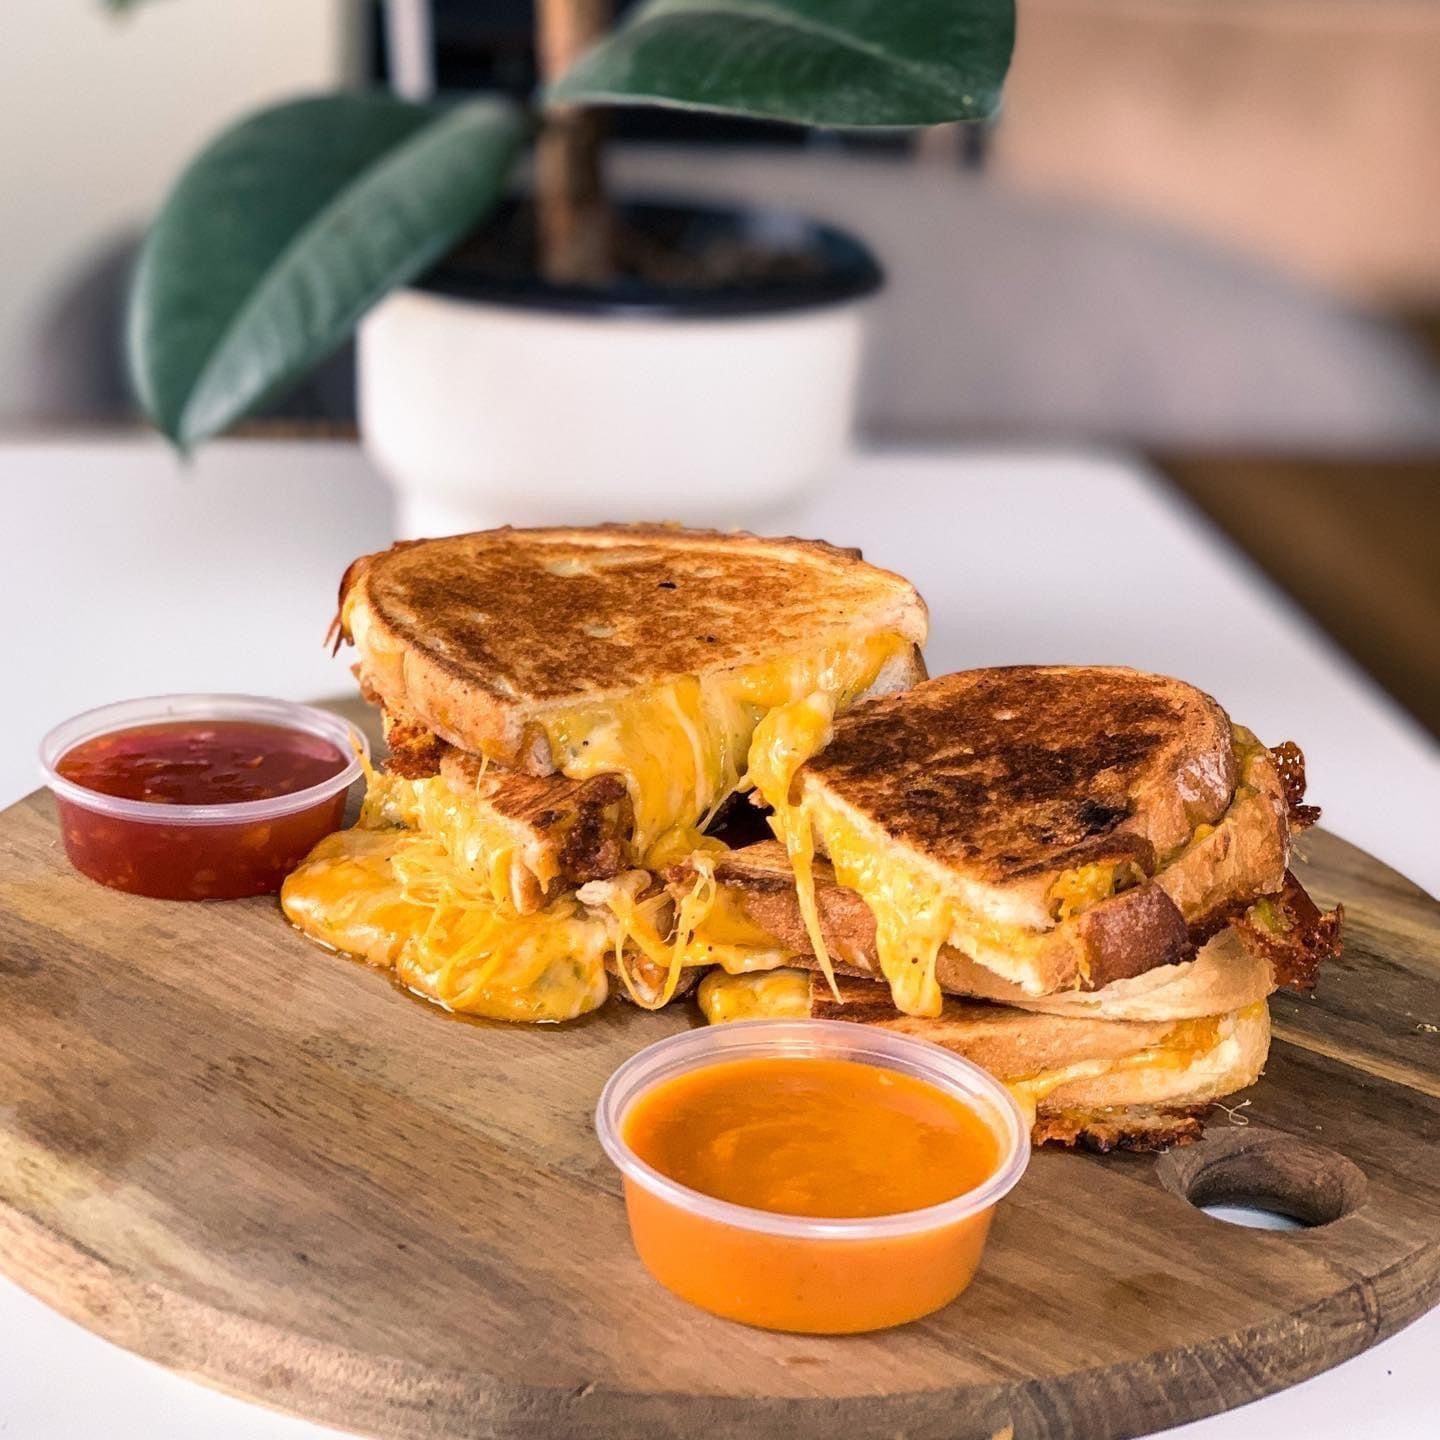 st martin's coffee grilled cheese